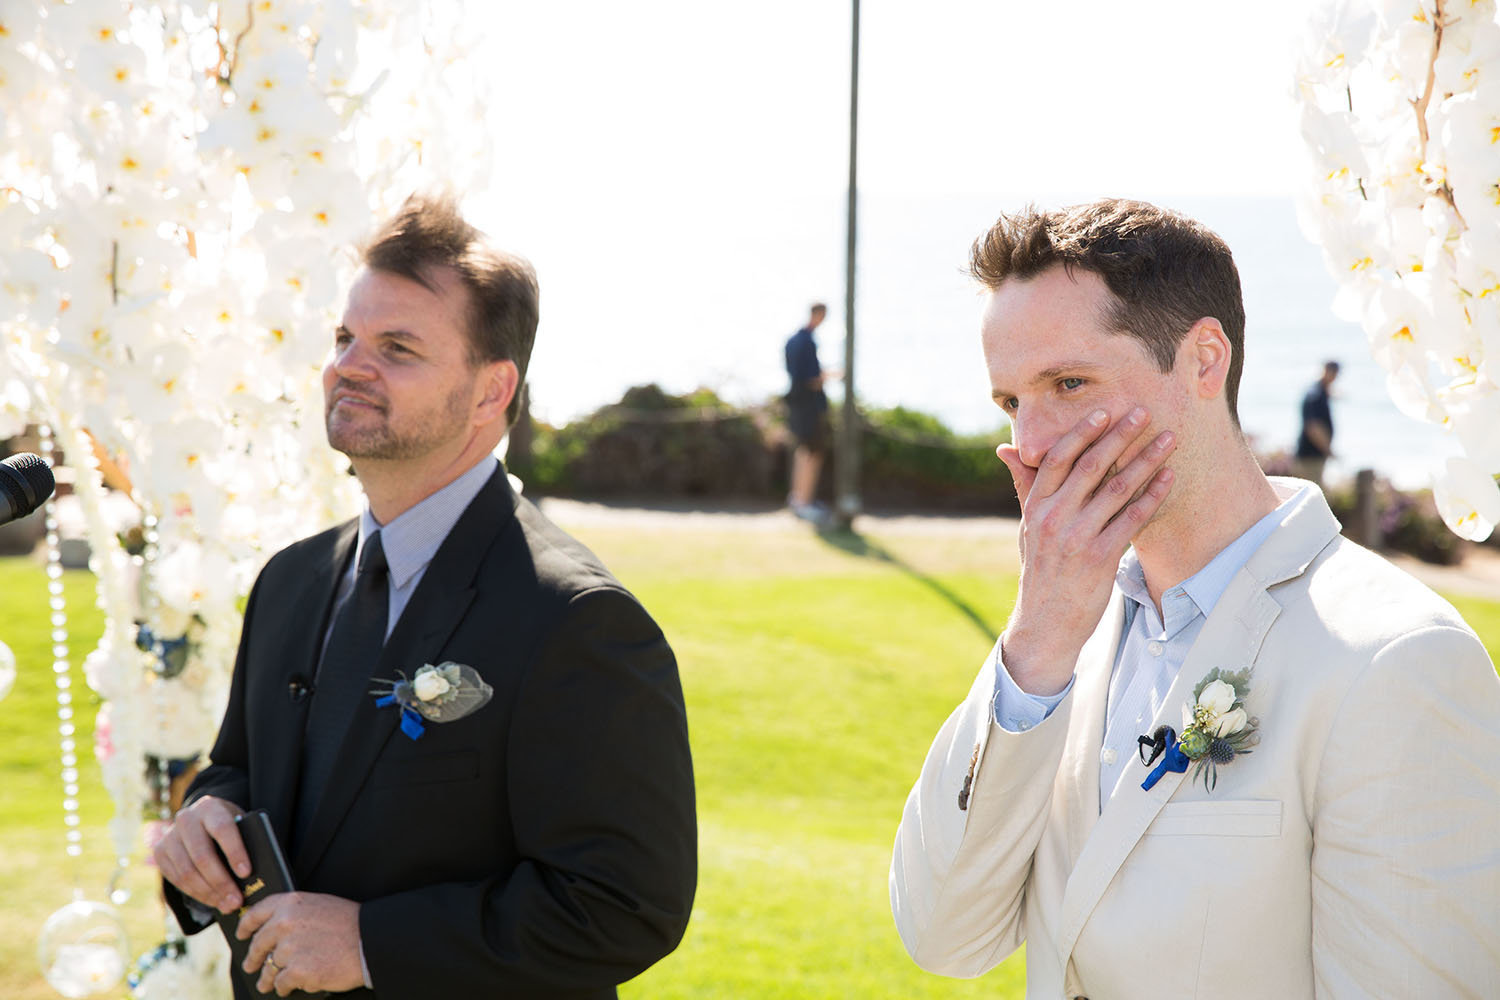 Emotional reaction to seeing the bride for the first time